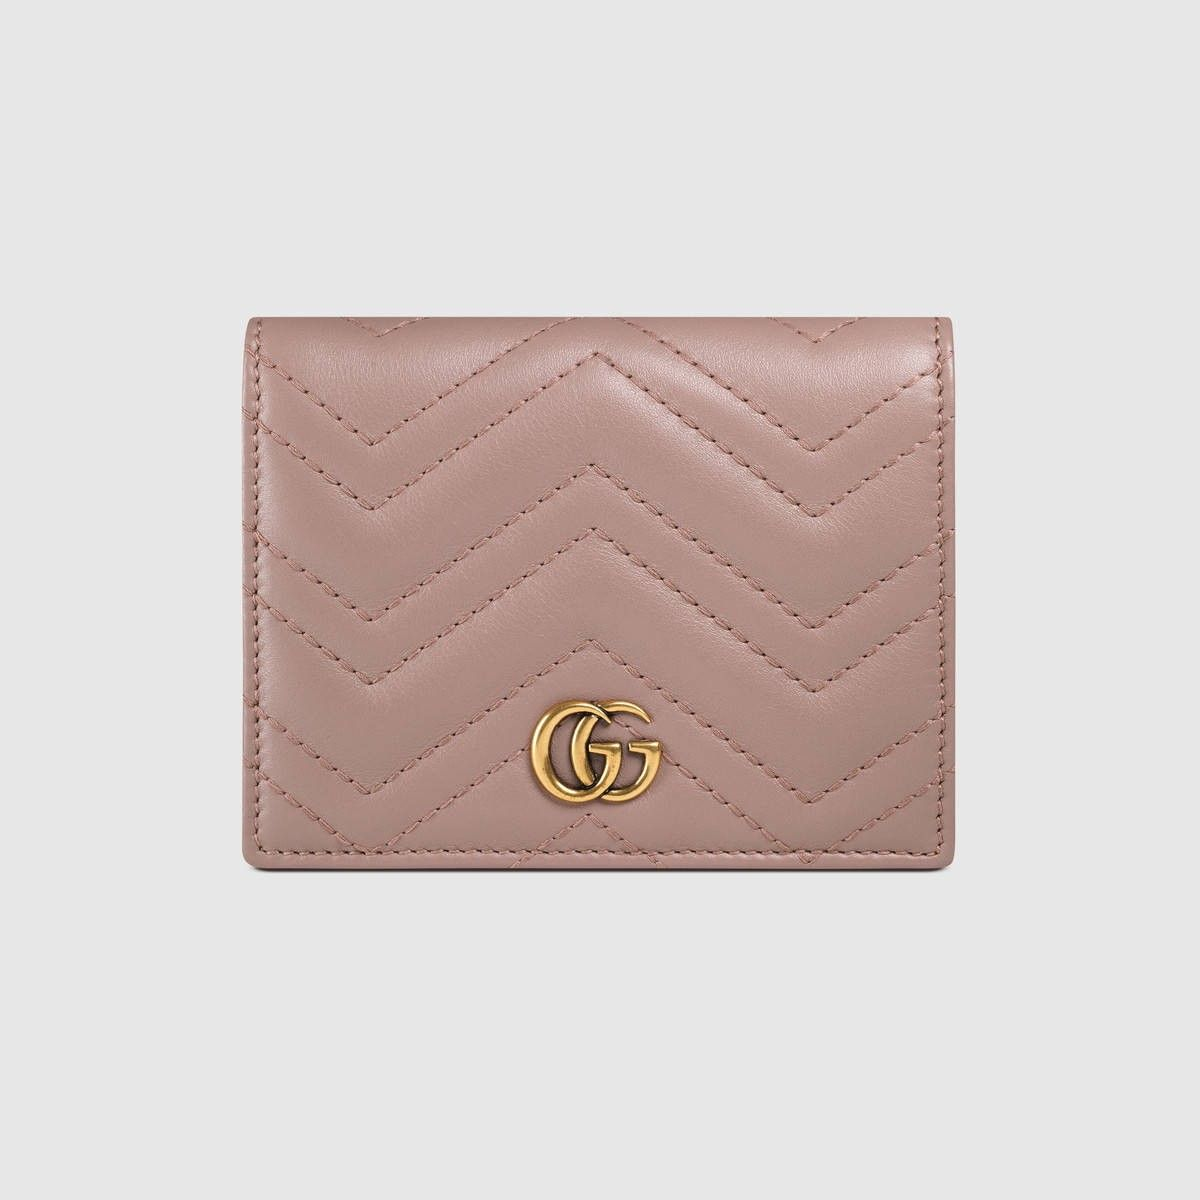 628a18539920 GUCCI Gg Marmont Card Case - Nude Matelassé Leather. #gucci #bags #leather #